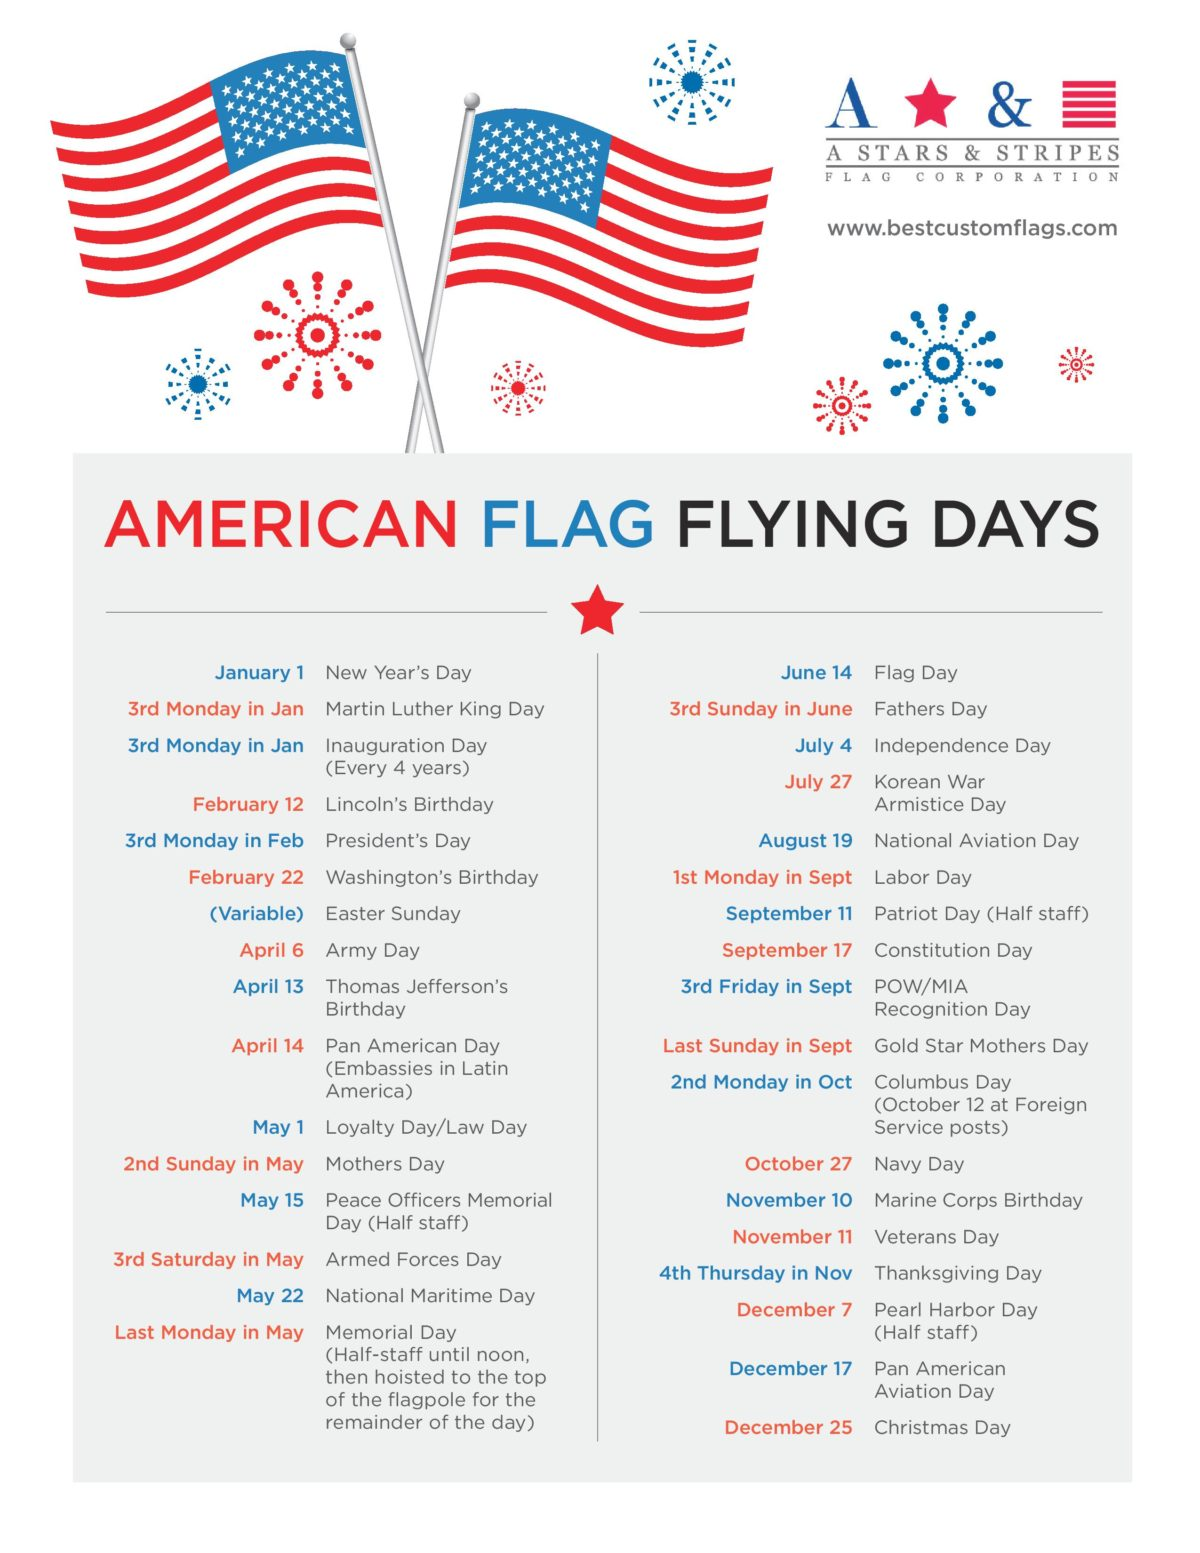 American Flag Flying Days